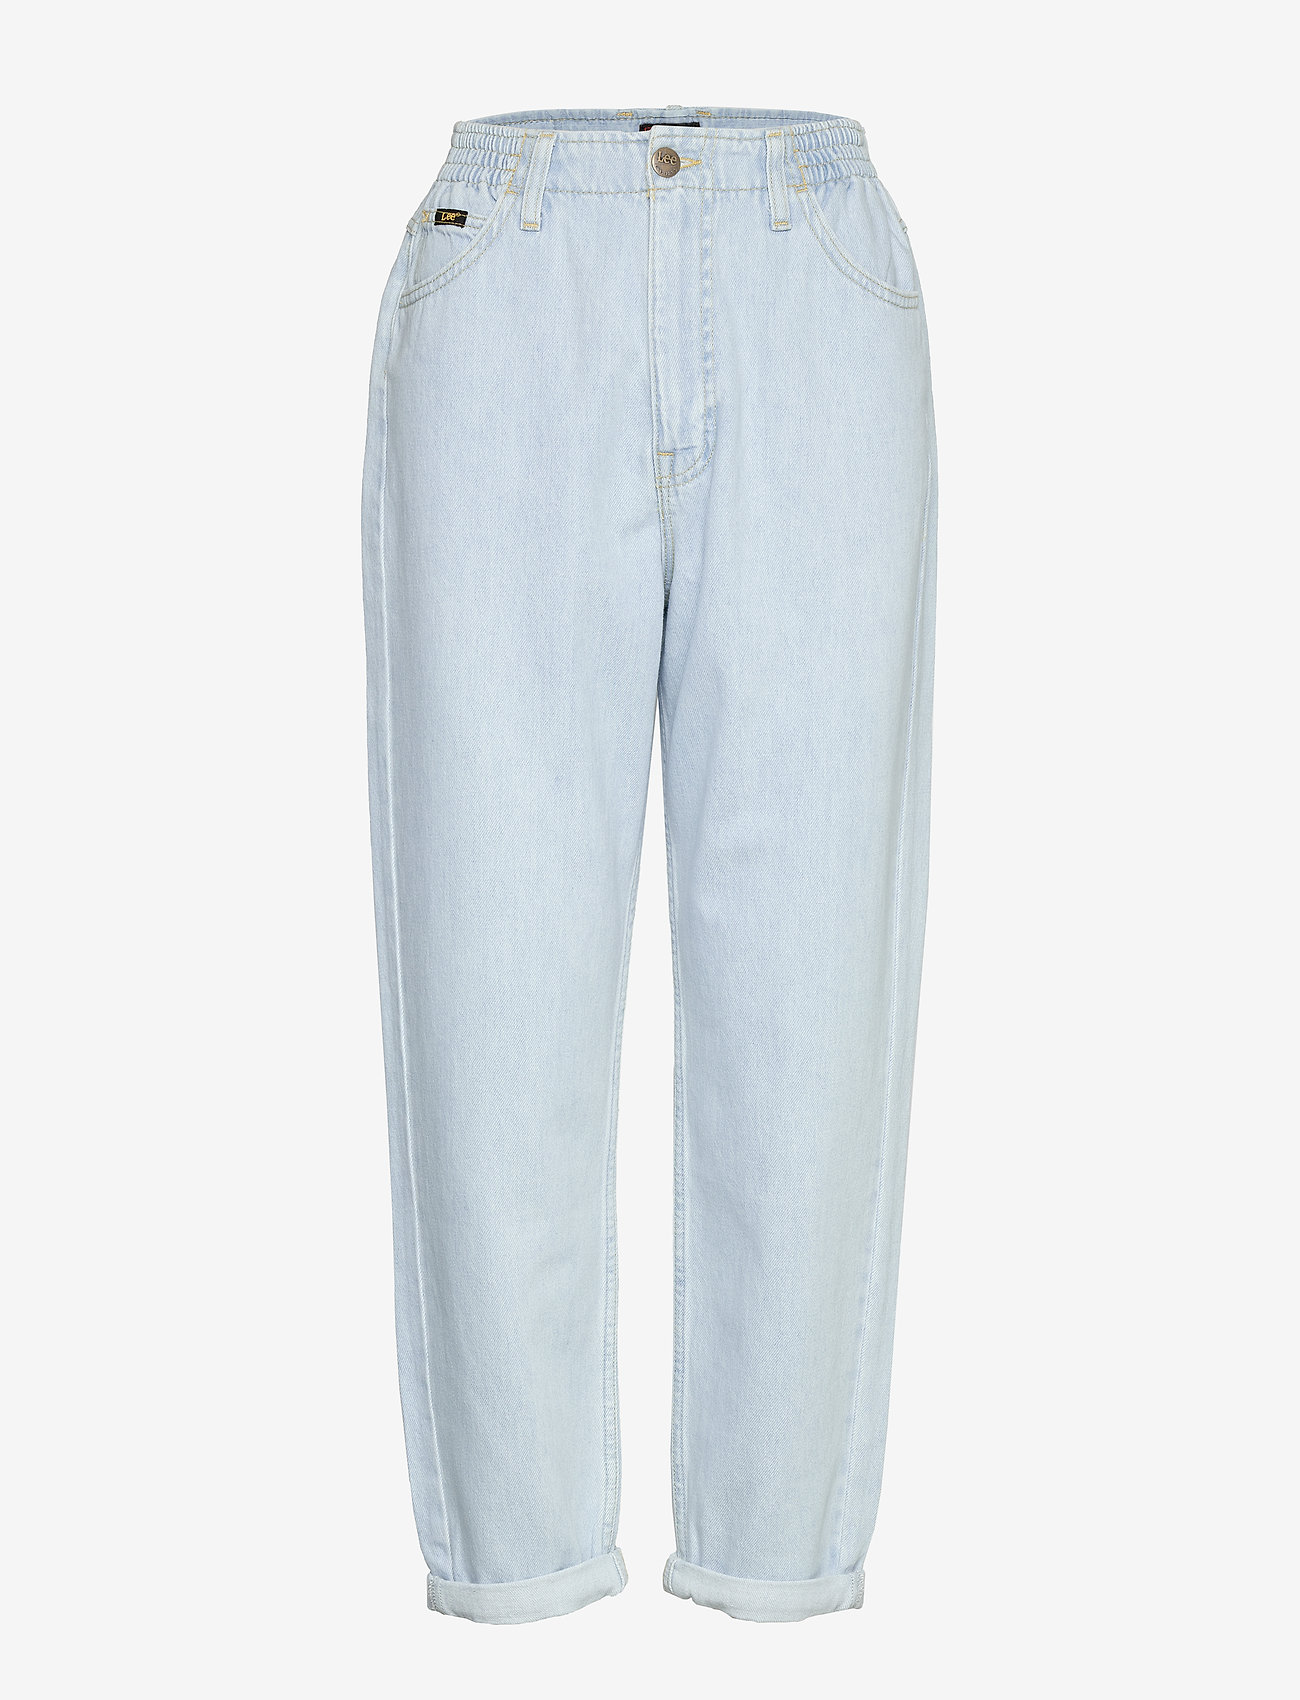 Lee Jeans - ELASTICATED MOM - mammajeans - bleached ore - 0